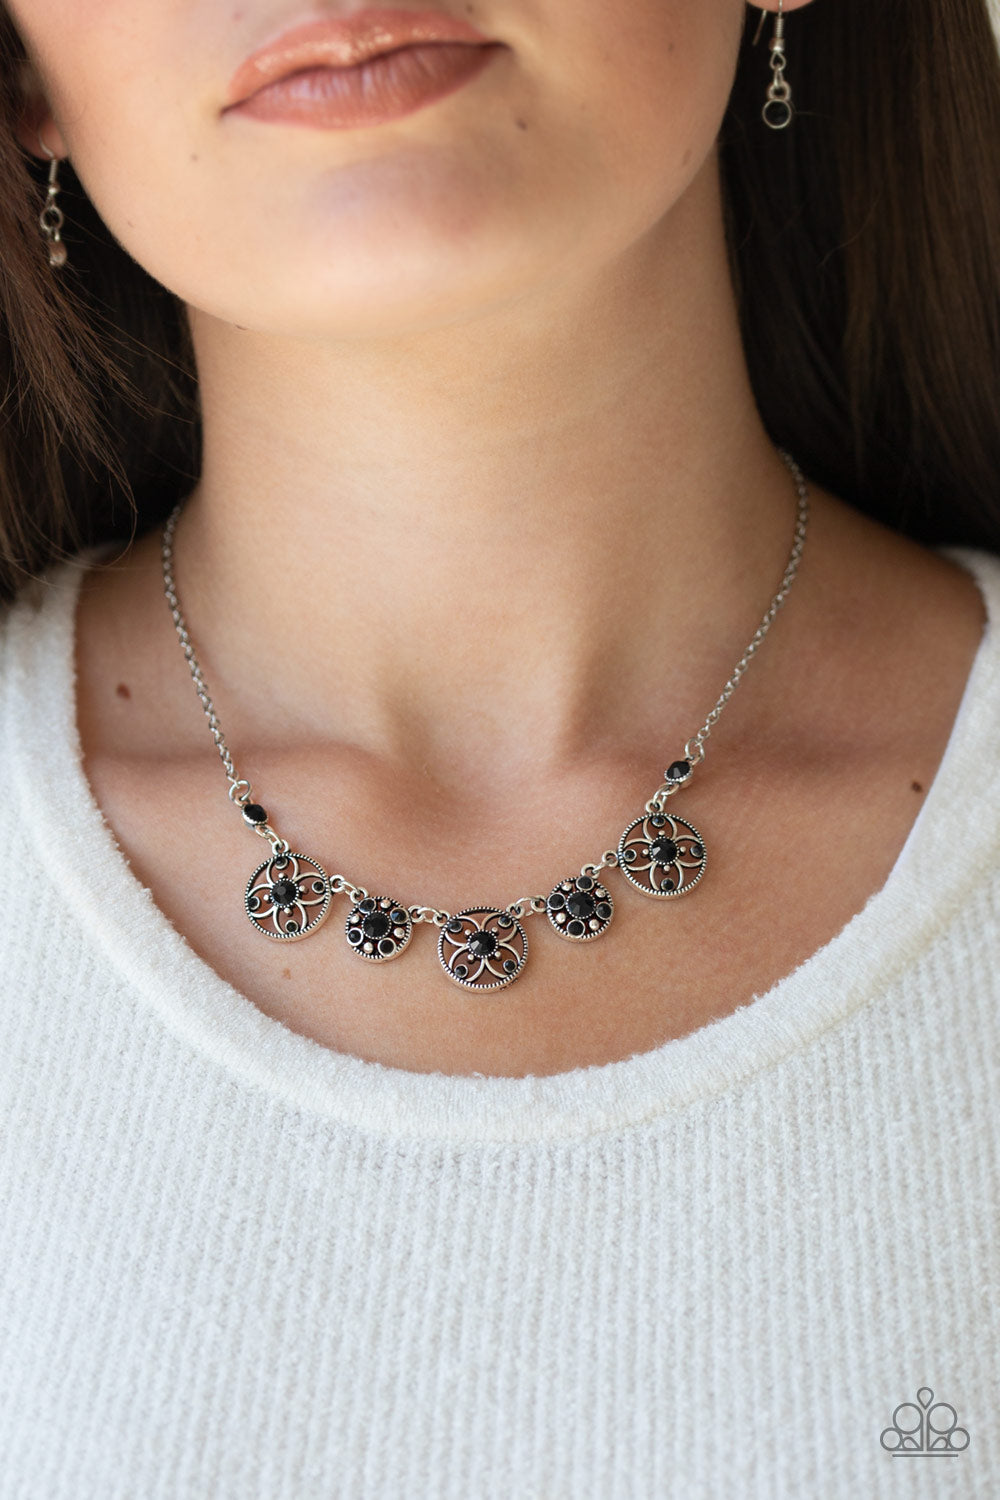 Paparazzi - Floral Florescence - Black Necklace Set - Classy Jewels by Linda